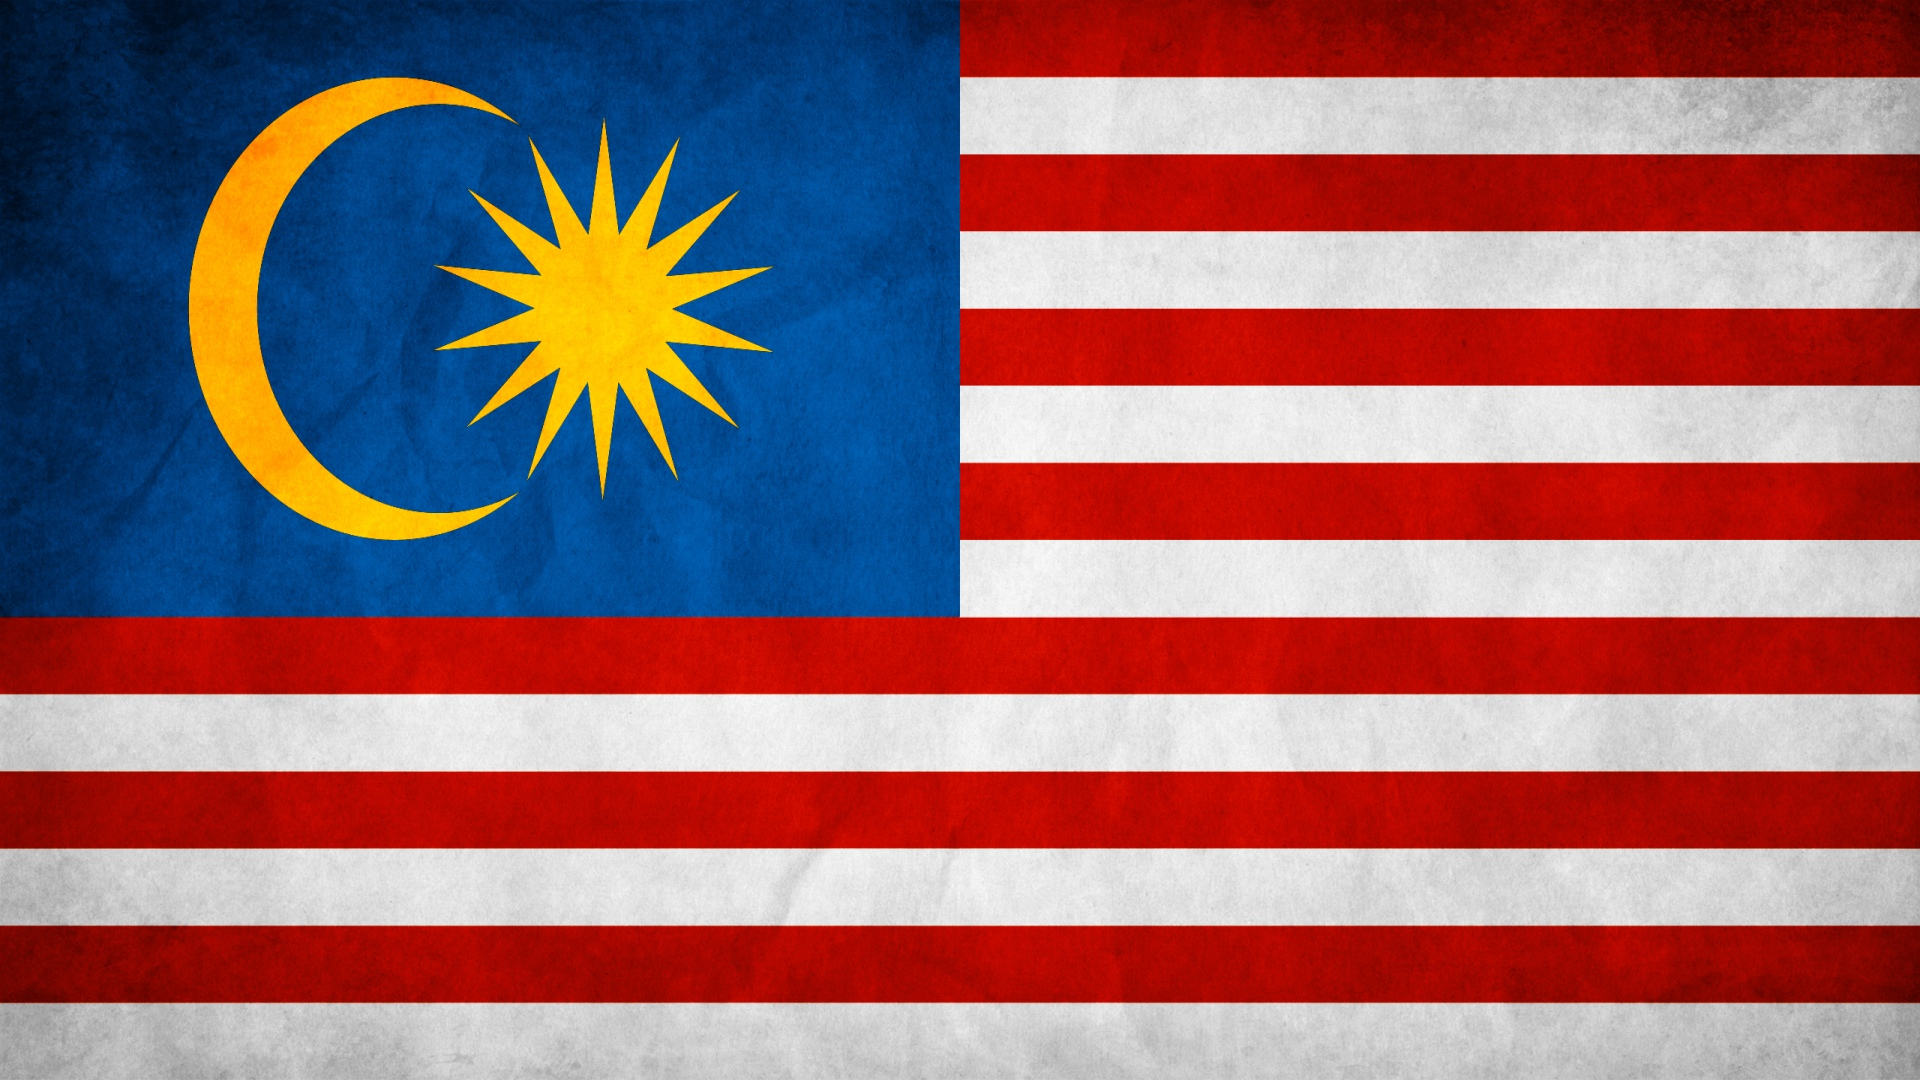 Malaysia Flag   Wallpaper High Definition High Quality 1920x1080